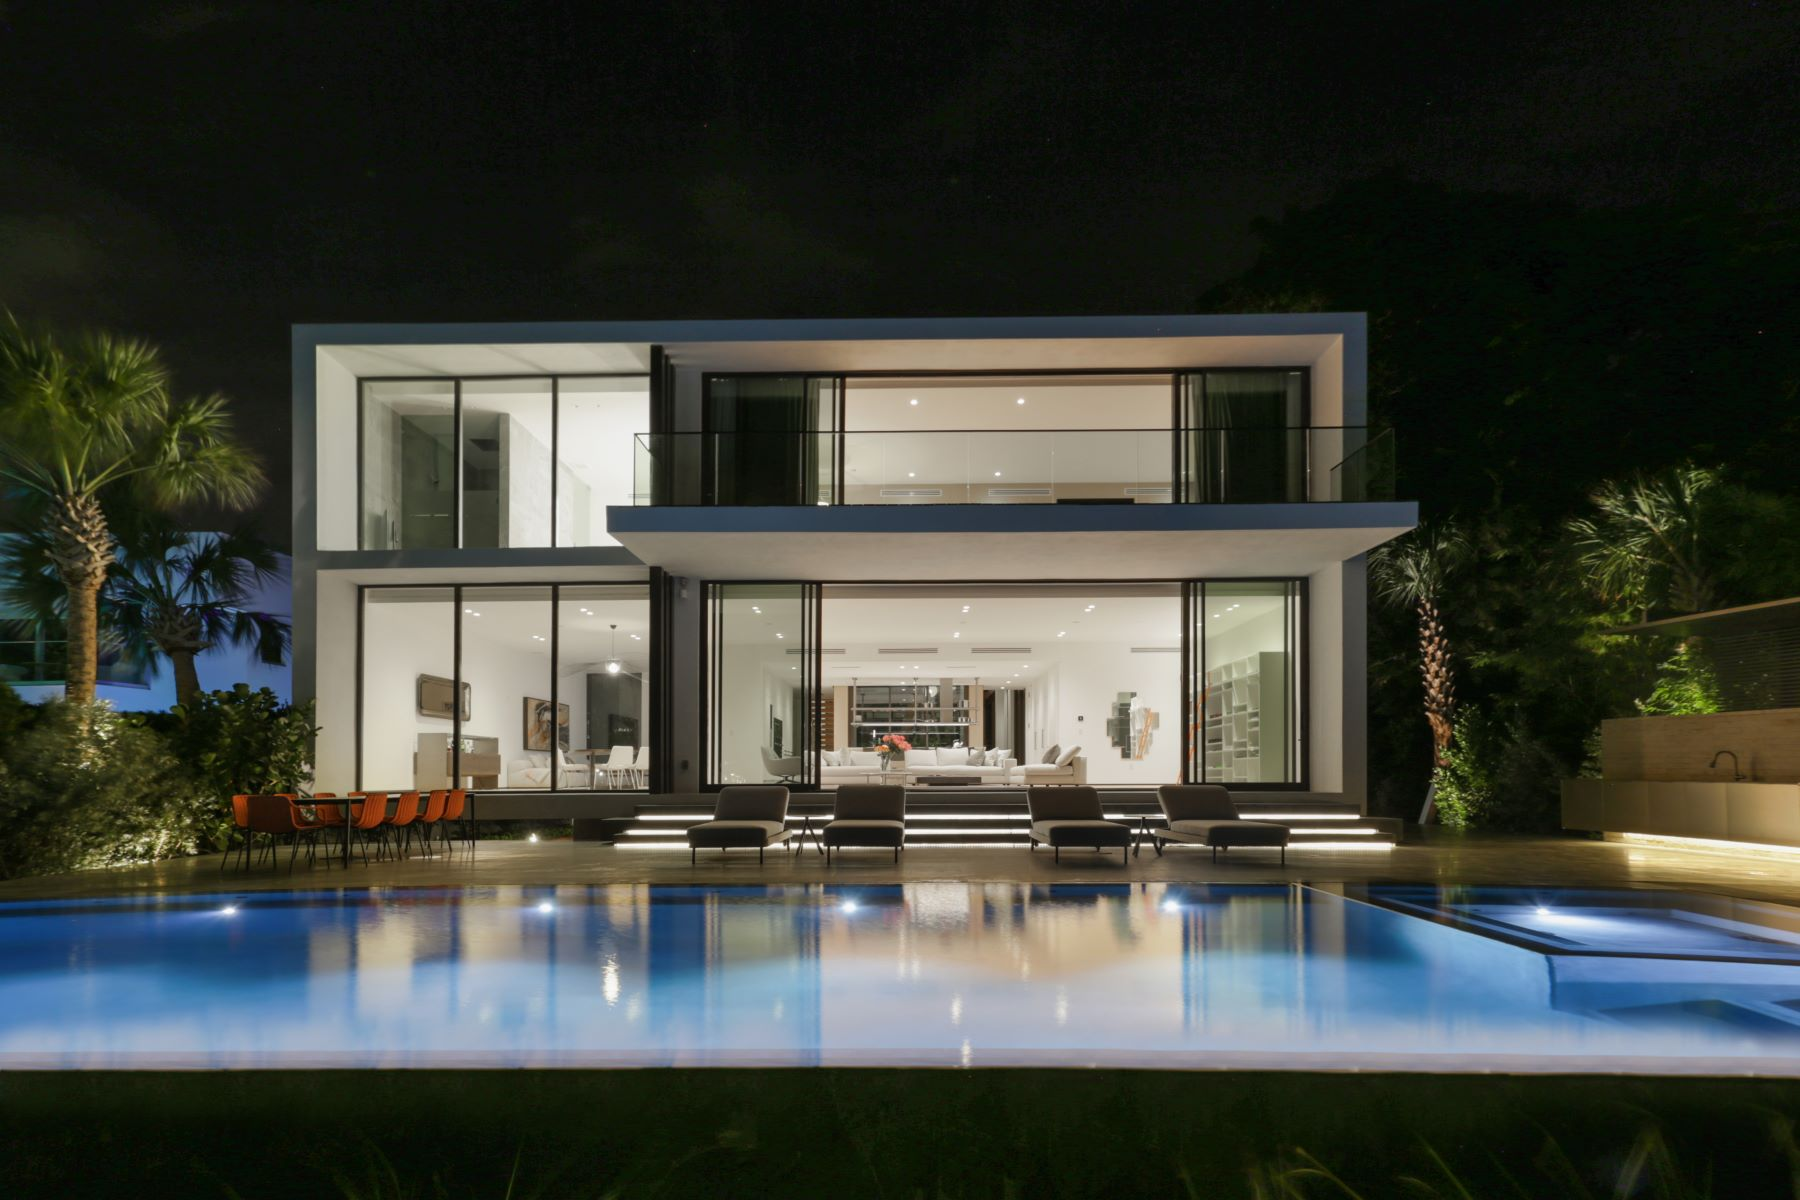 Single Family Homes for Active at 38 S Hibiscus Dr Miami Beach, Florida 33139 United States